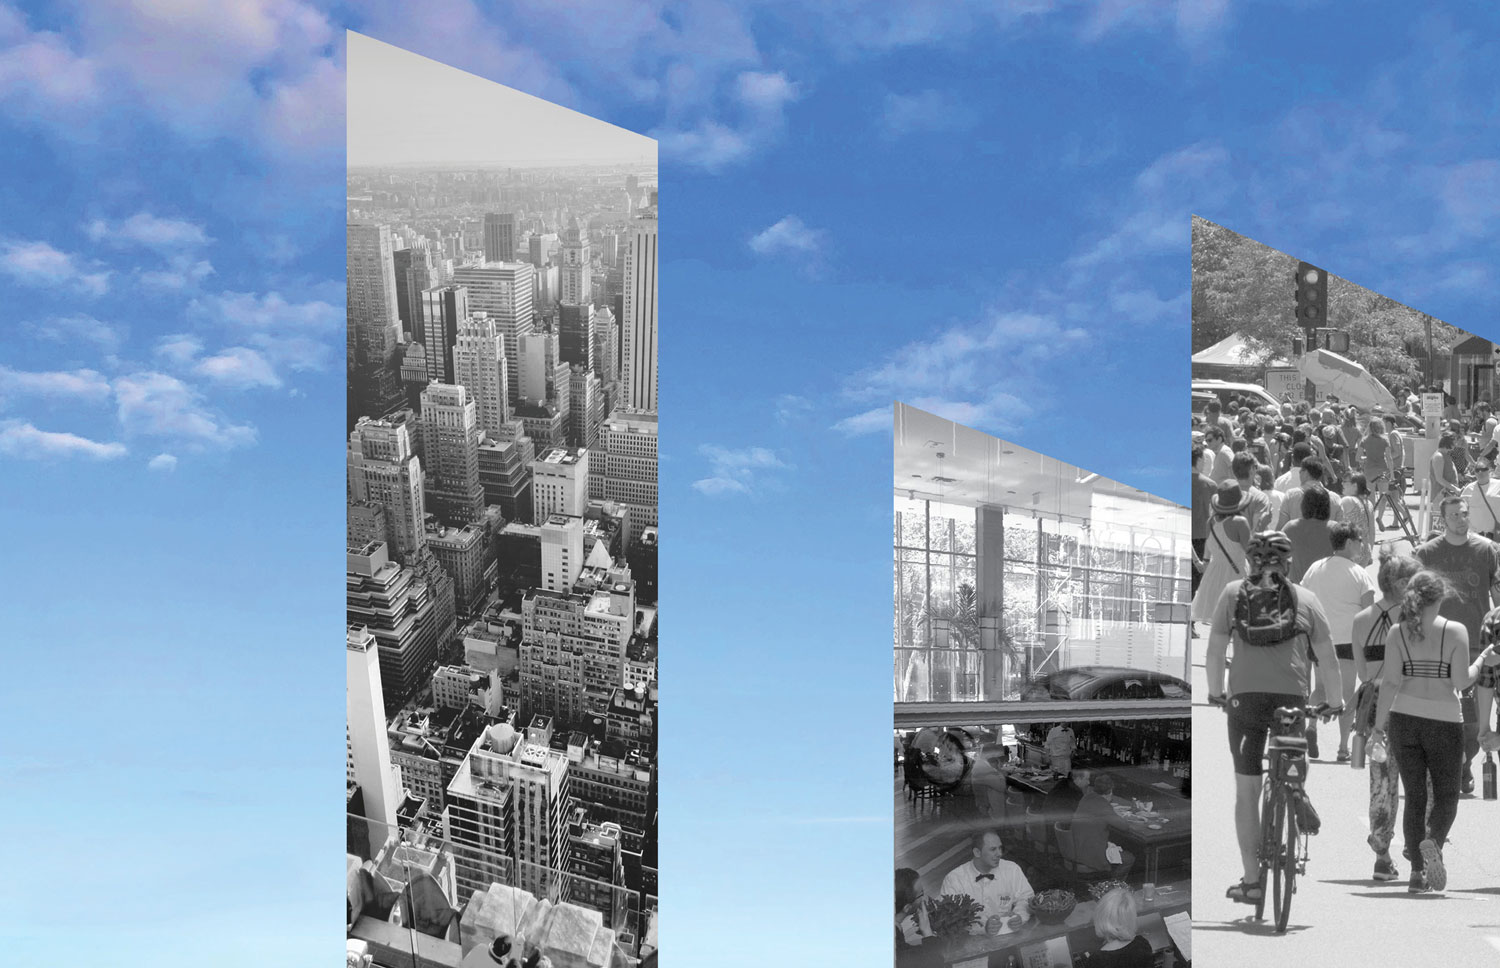 A collage of fragments of New York City streetscapes arranged as building shapes over a blue sky with clouds.